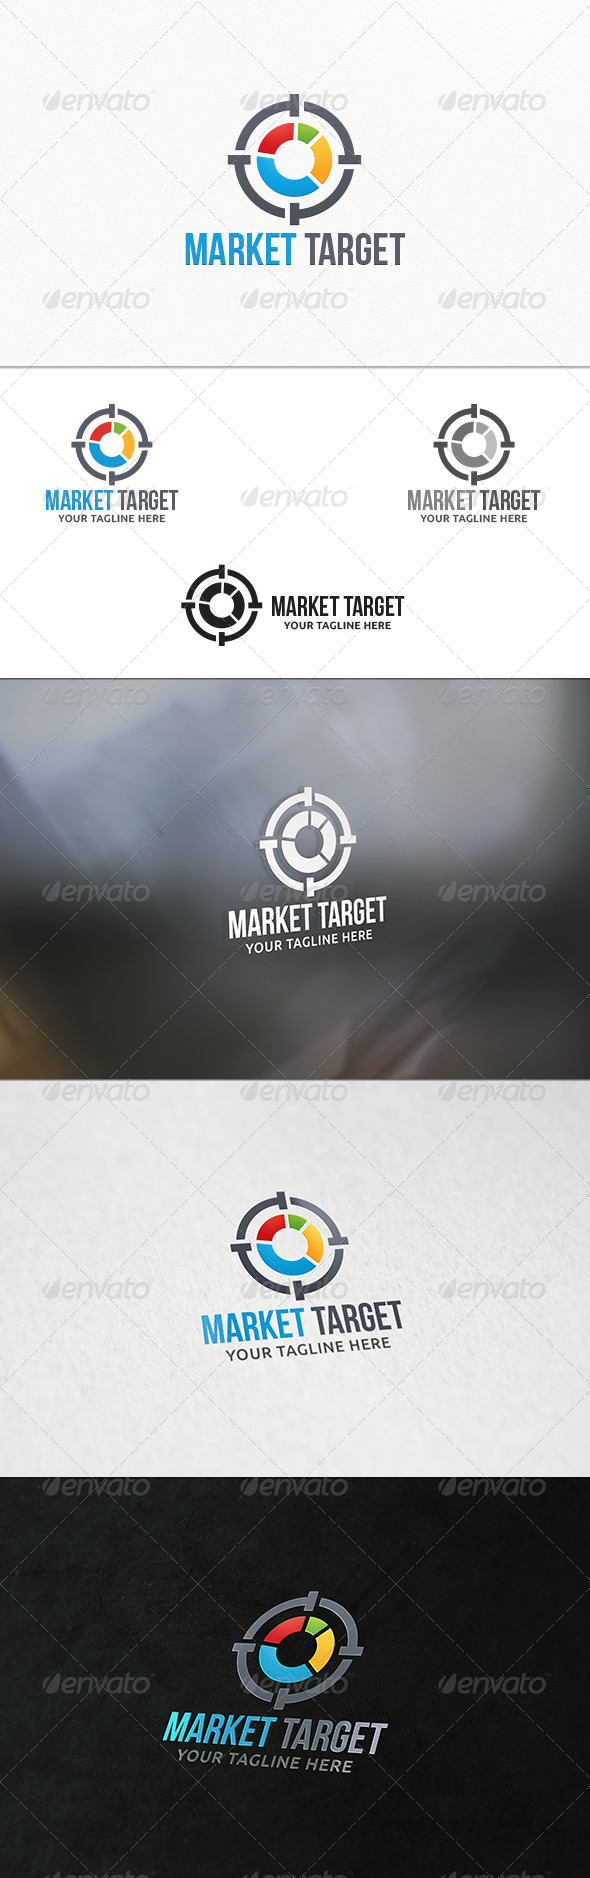 GraphicRiver Market Target Logo Template 8155727